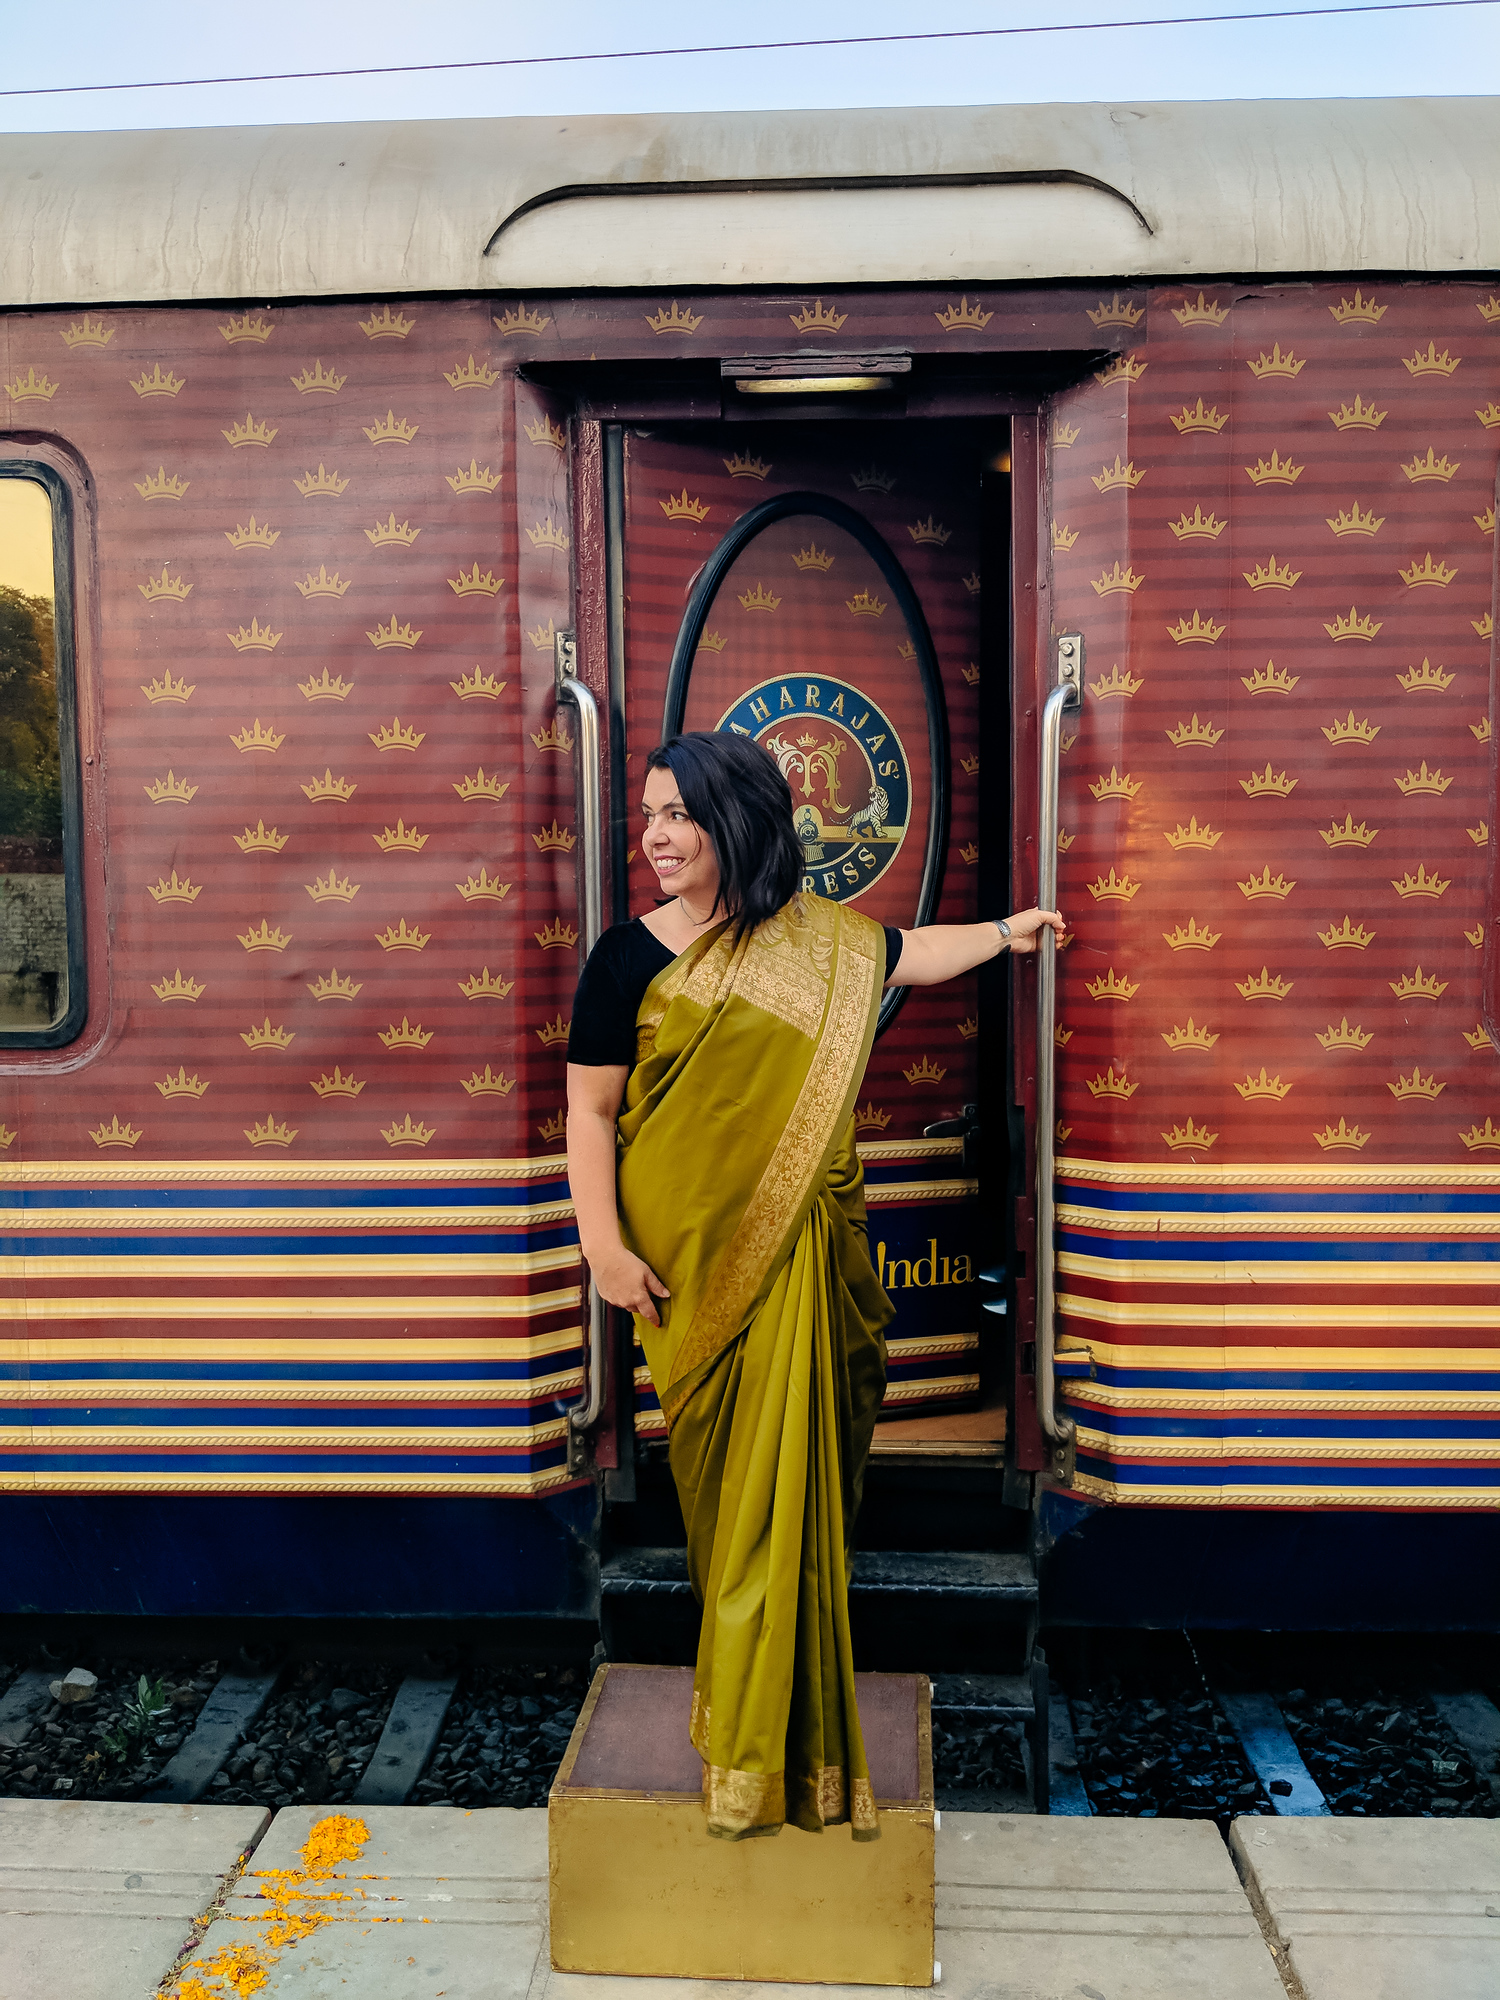 The Maharajas Express is a luxury train in India but is the price tag worth it? Here's an honest review.